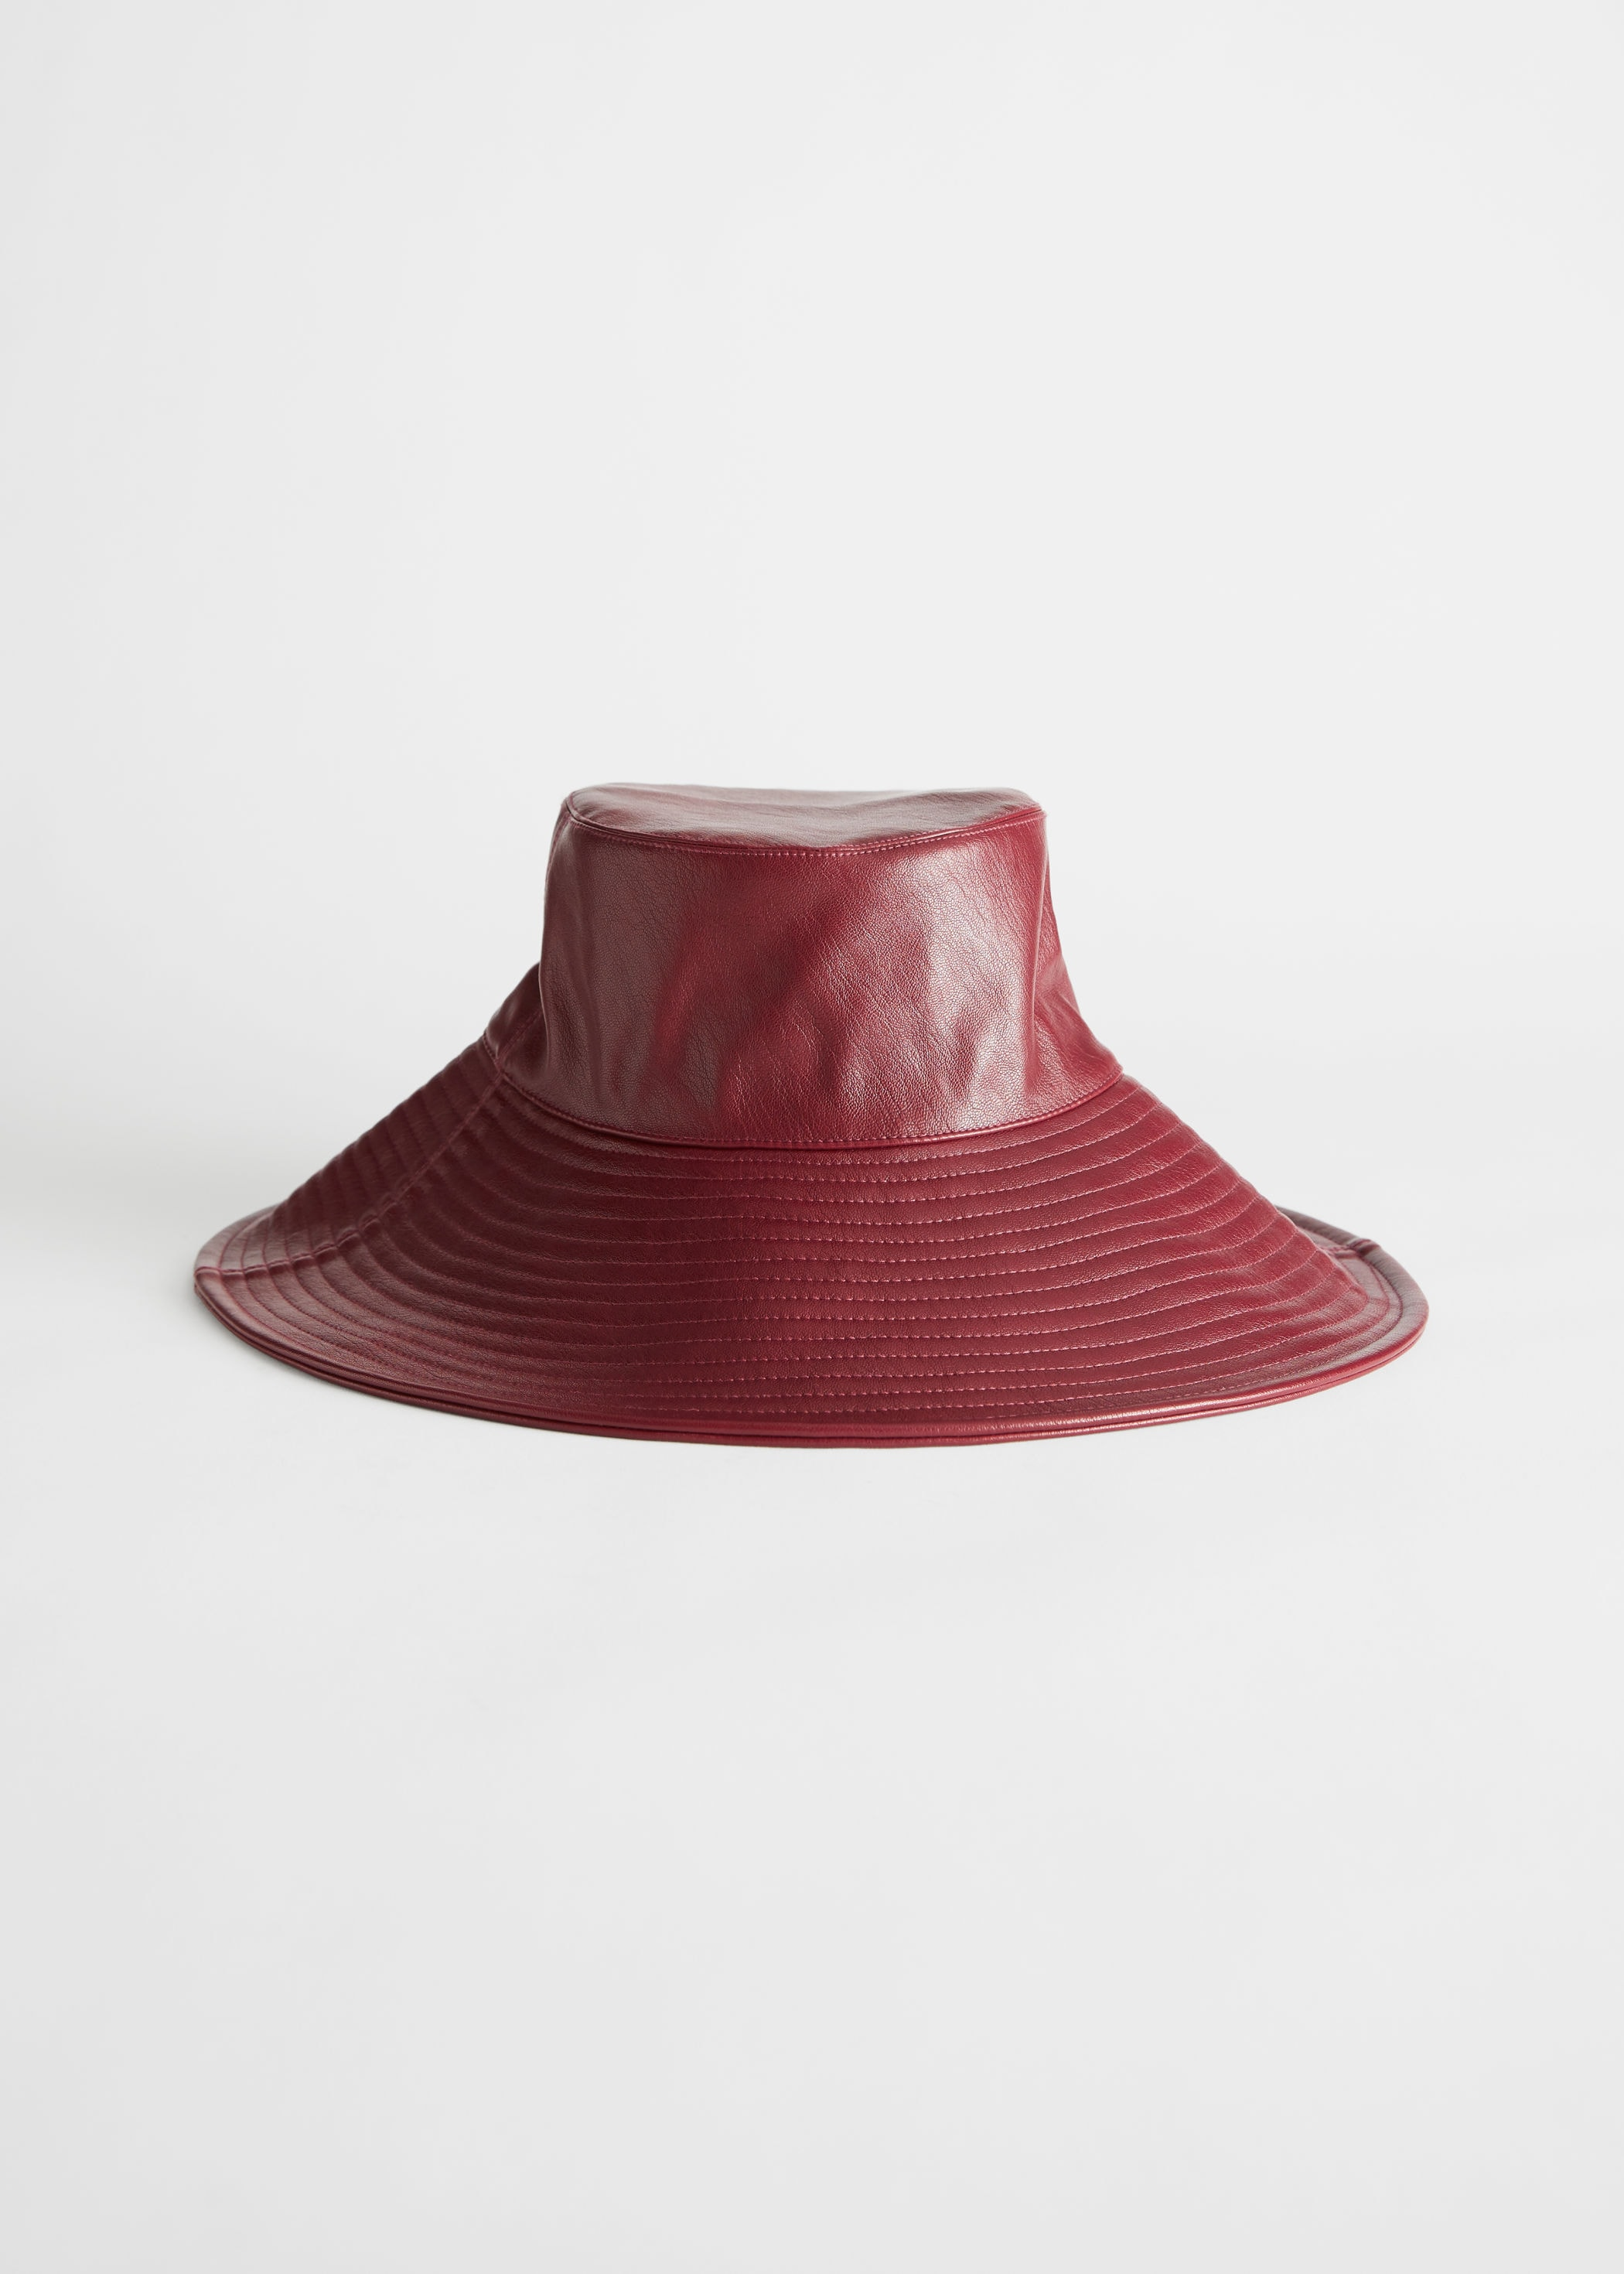 & Other Stories Leather Bucket Hat